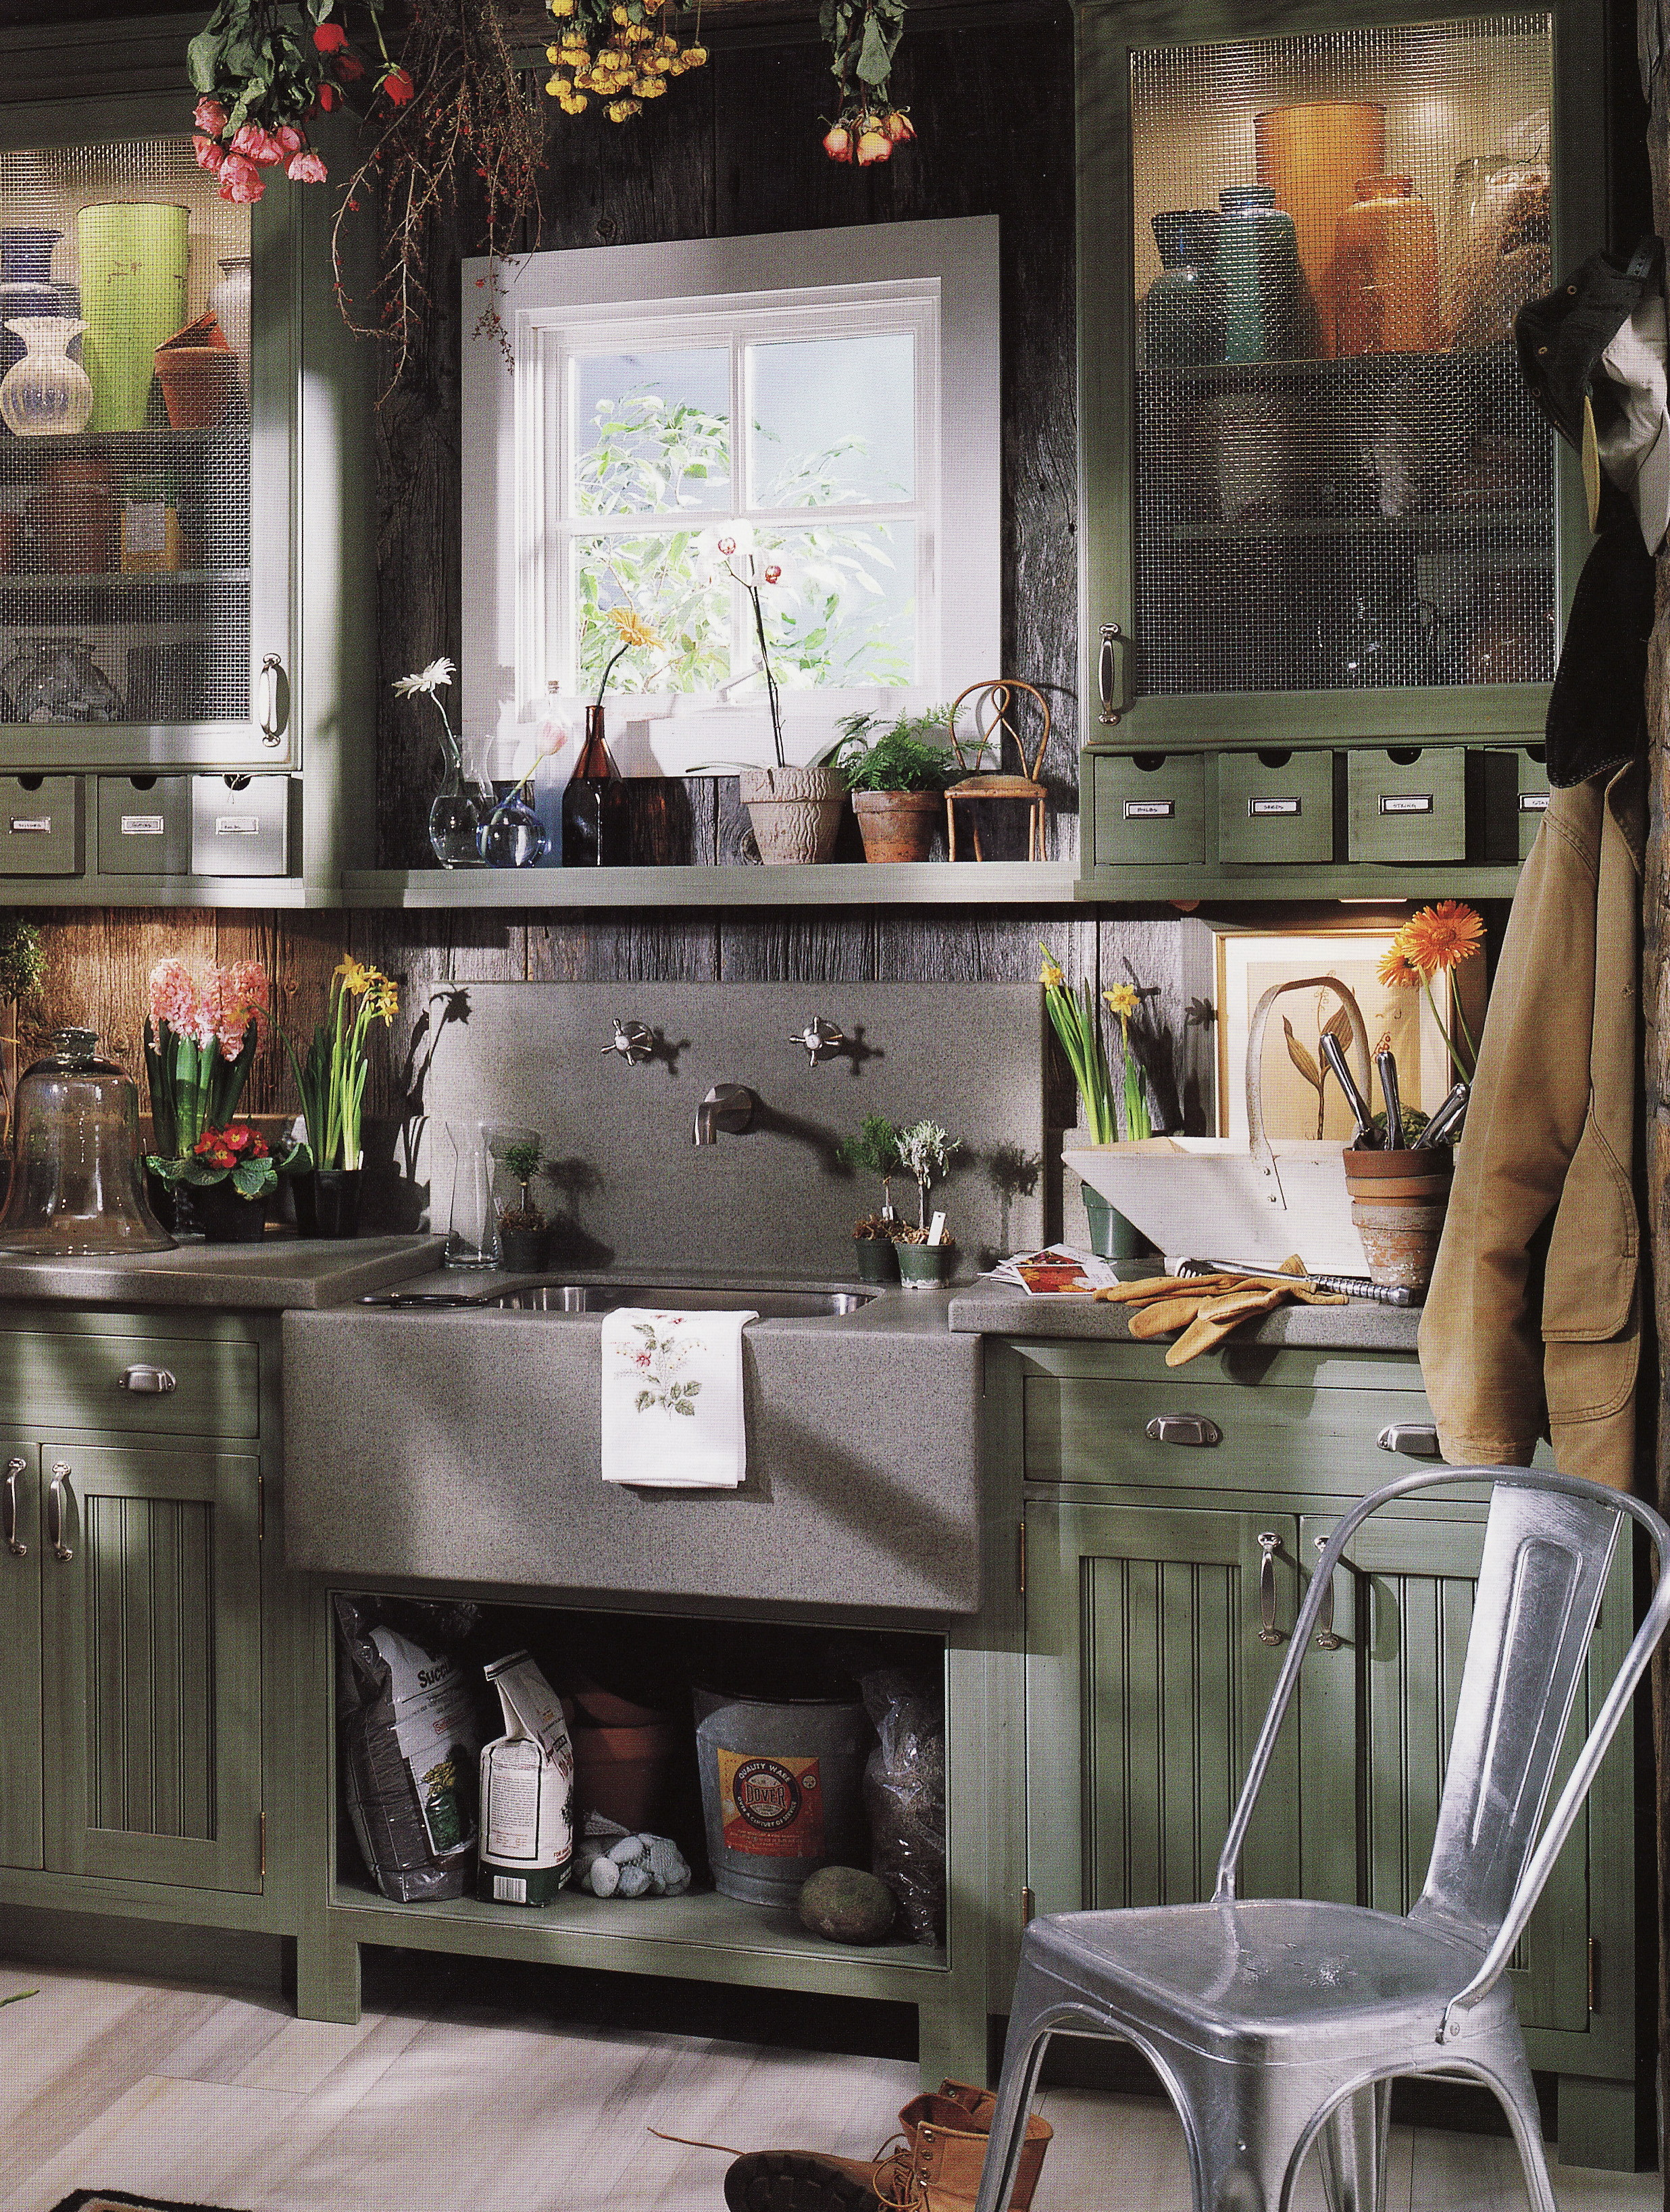 THE ULTIMATE POTTING SHED